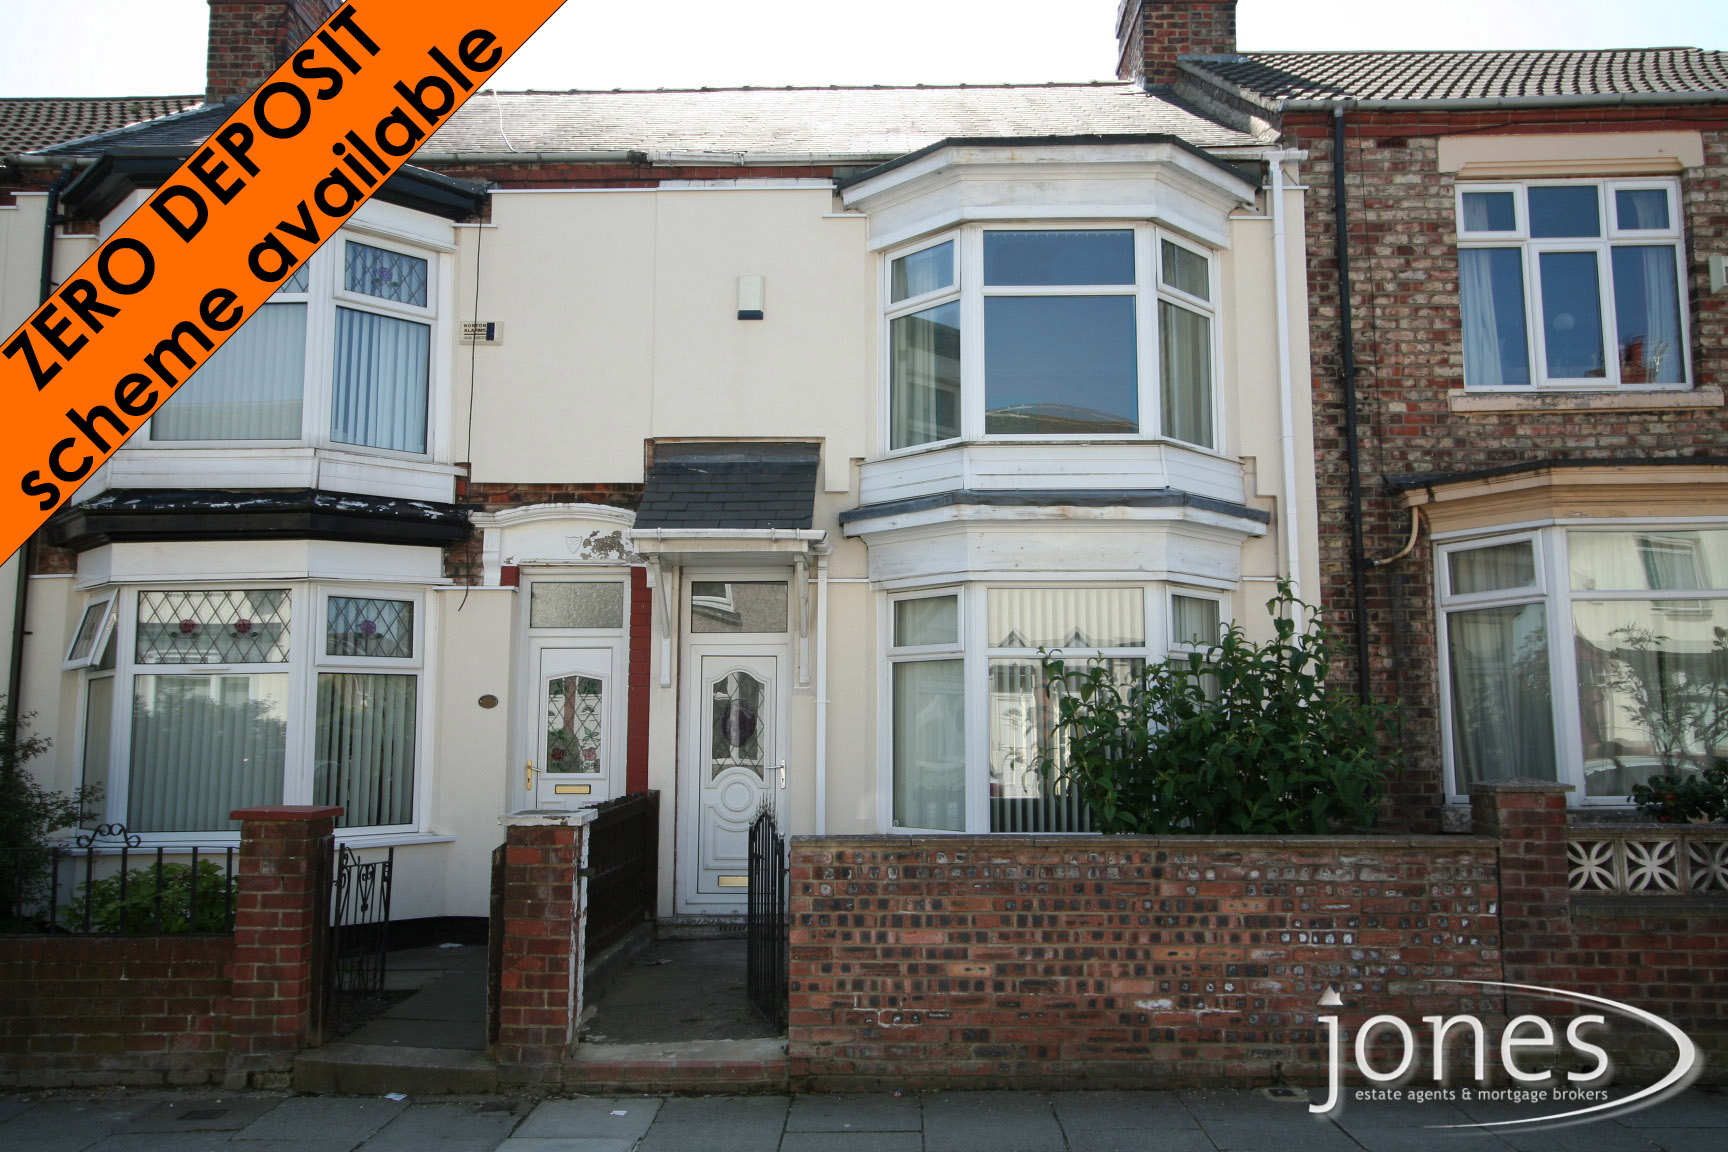 Home for Sale Let - Photo 01 Lambton Road,  Stockton on Tees, TS19 0ER